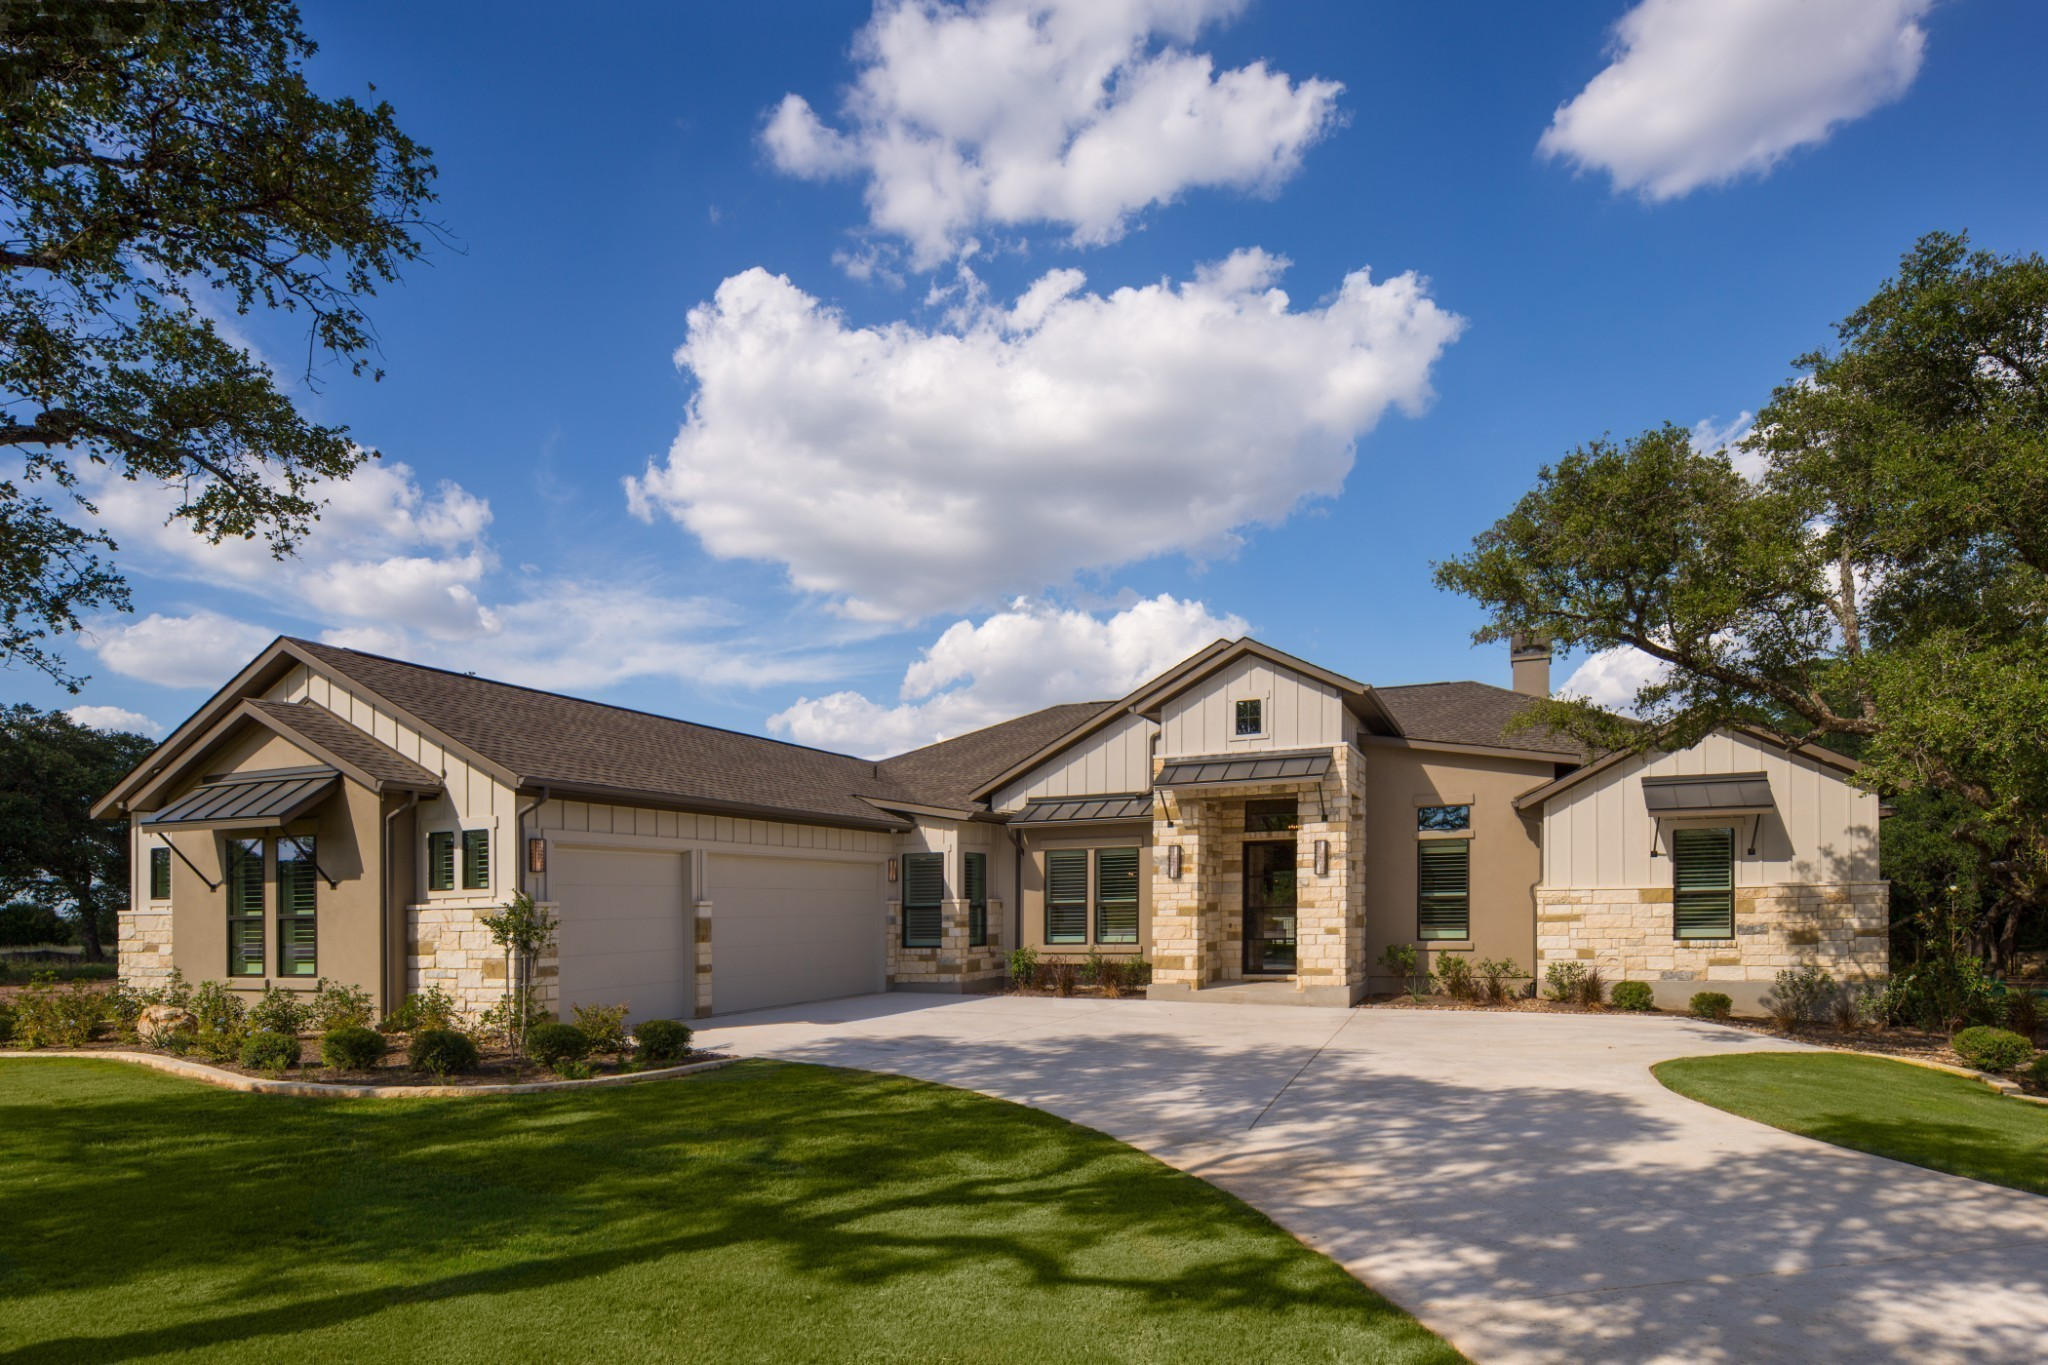 Home pictures are of similar home built in Texas.   In highly sought after Lookaway Farms zoned Ravenwood High, Clovercroft Elementary, and Woodlands Middle